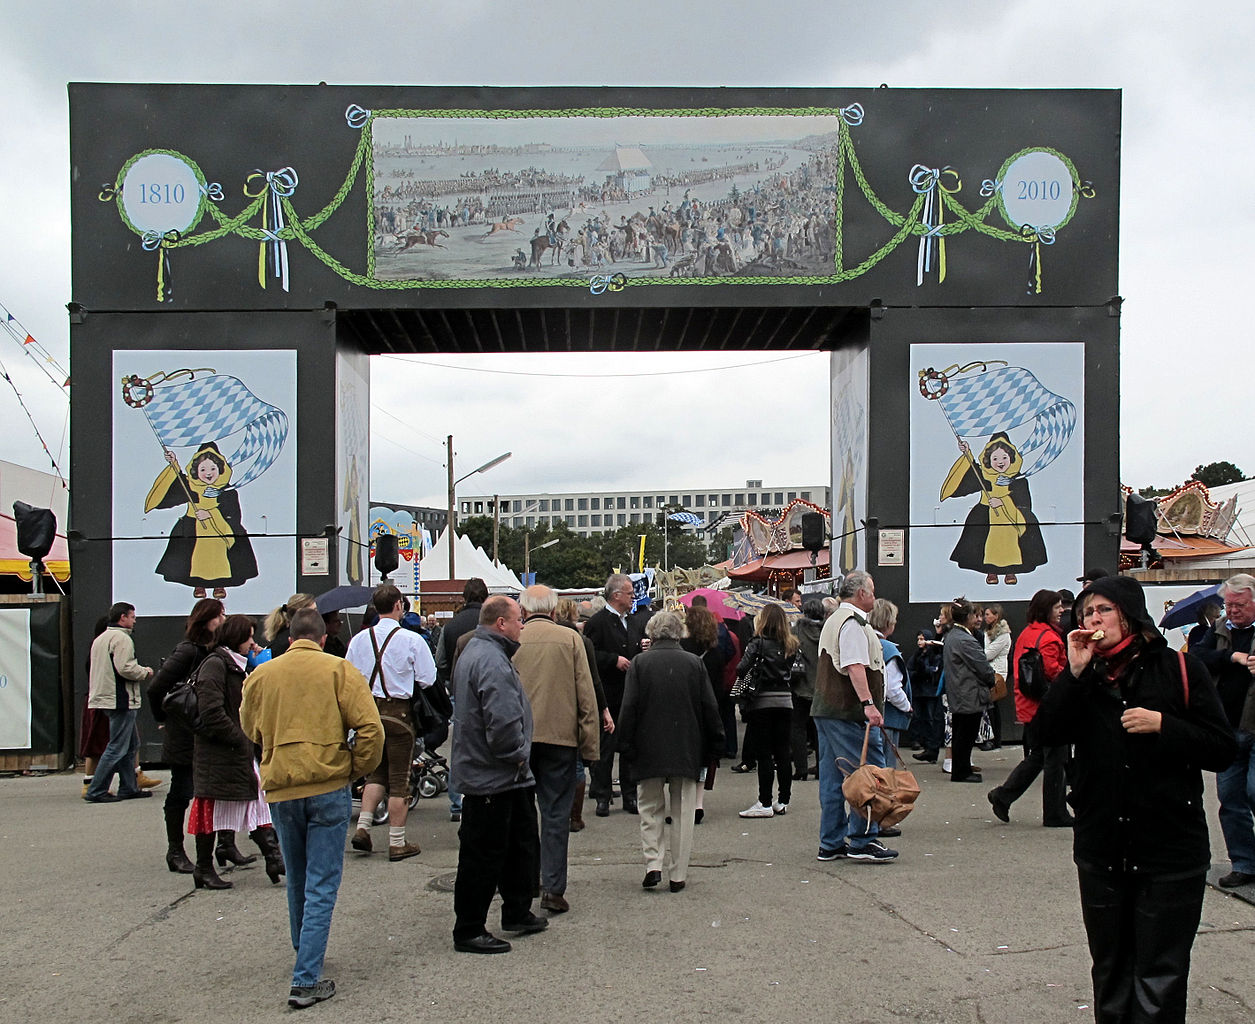 Main entrance to the Historical Oktoberfest in Munich, Germany. Photo taken by Richard Huber in September 2010.